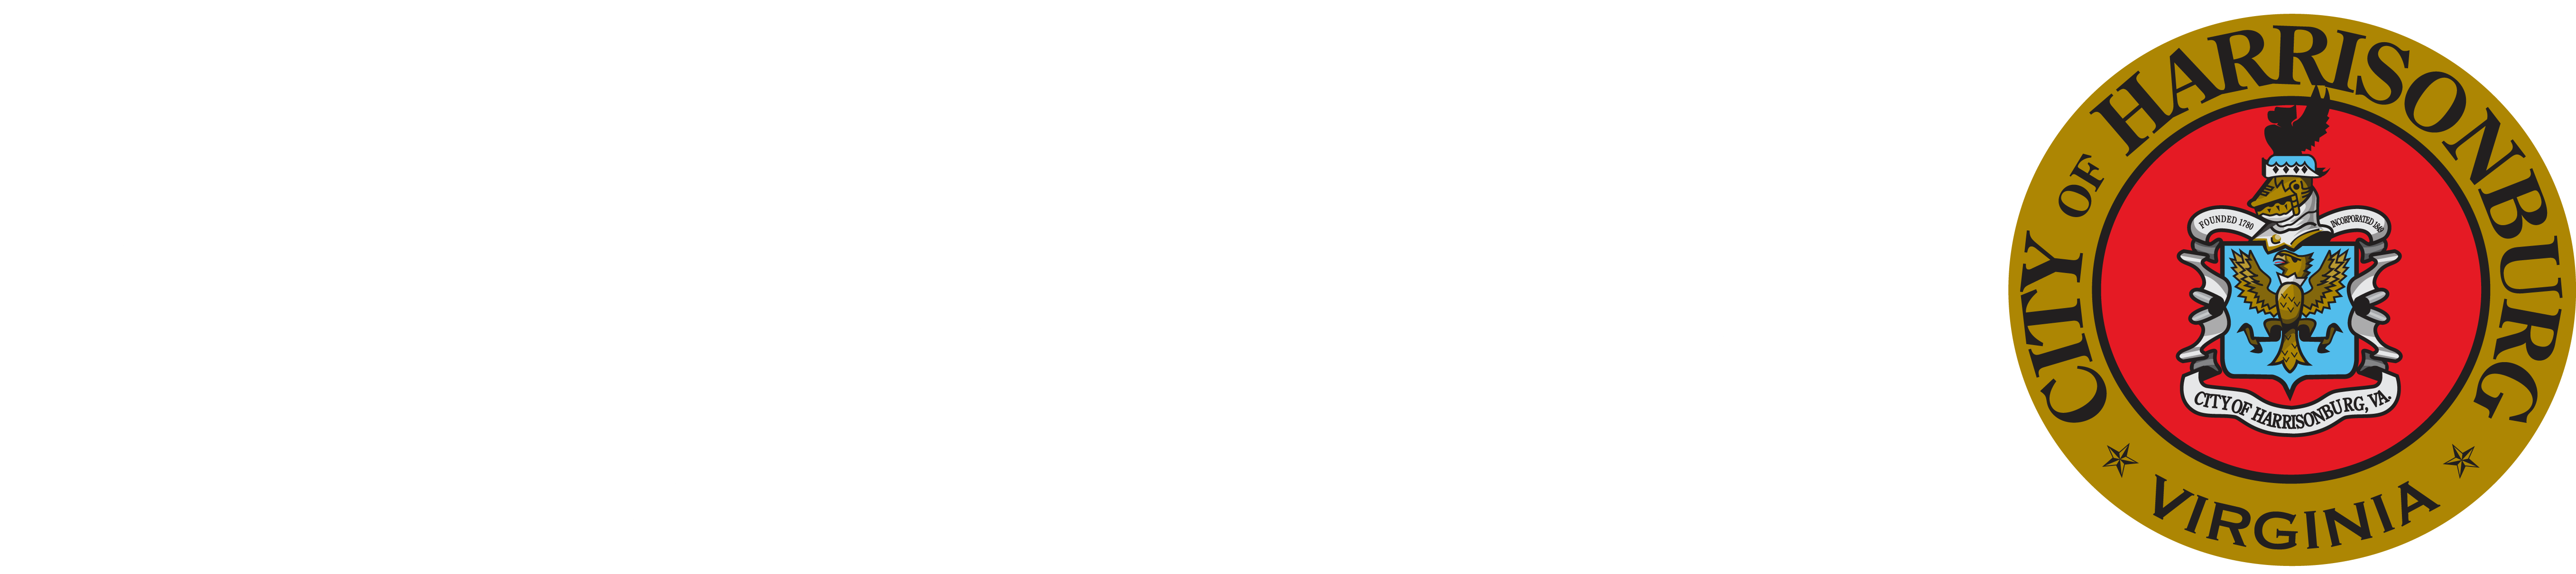 Harrisonburg Economic Development Mobile Retina Logo